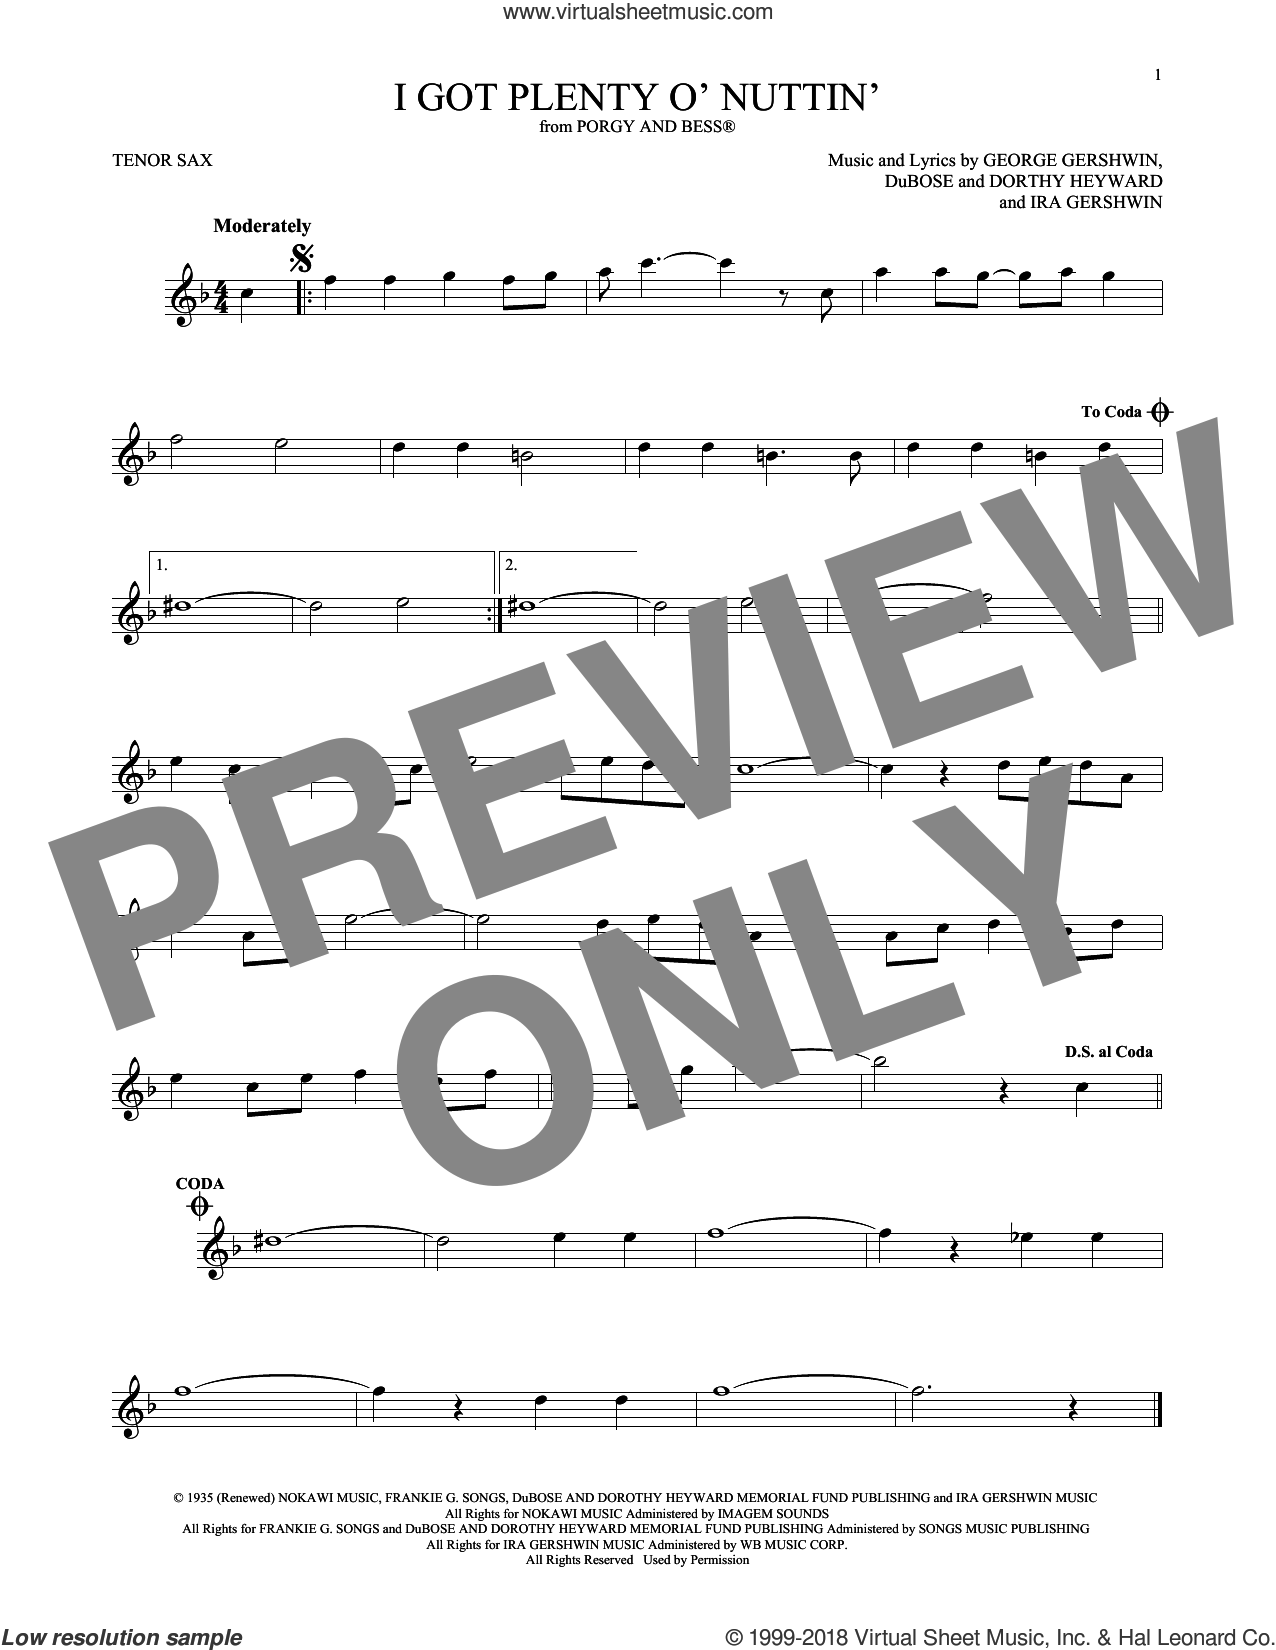 I Got Plenty O' Nuttin' sheet music for tenor saxophone solo by George Gershwin, Dorothy Heyward, DuBose Heyward and Ira Gershwin, intermediate skill level